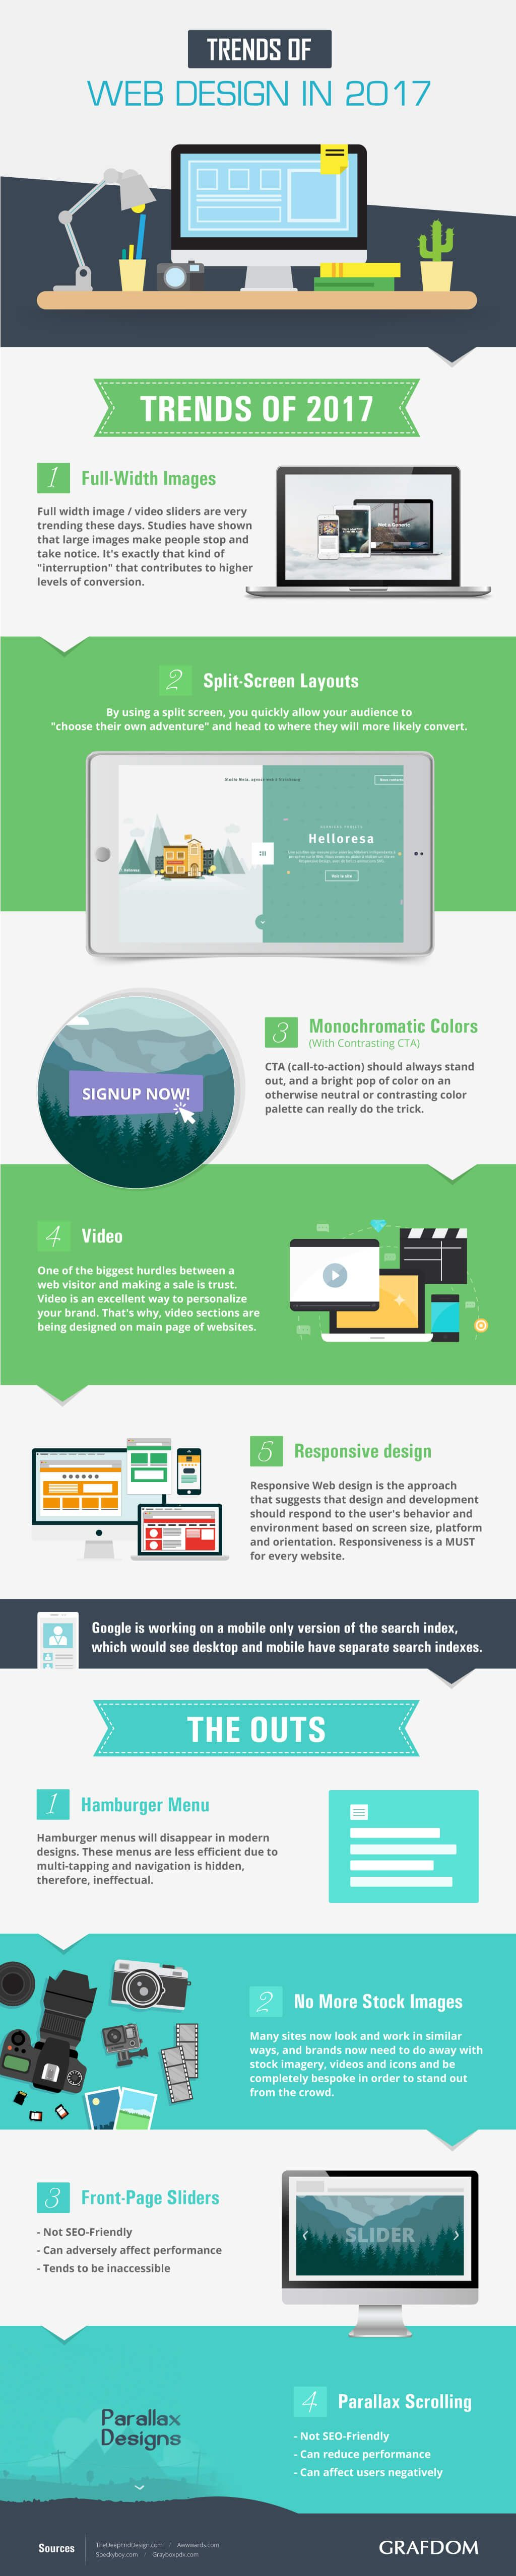 Trends Of Web Design In 2017 #Infographic